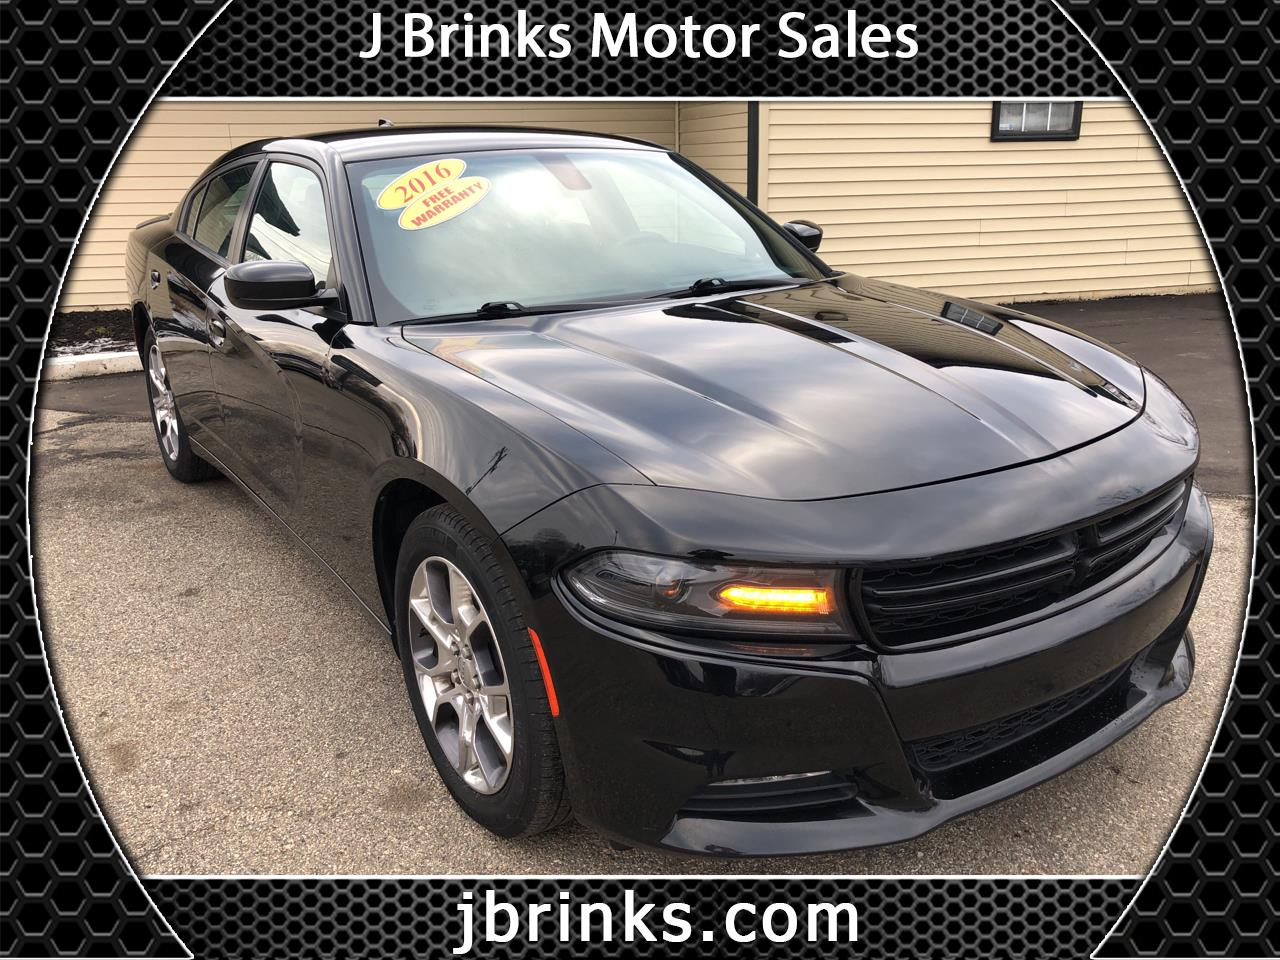 2016 Dodge Charger 4dr Sdn SXT AWD